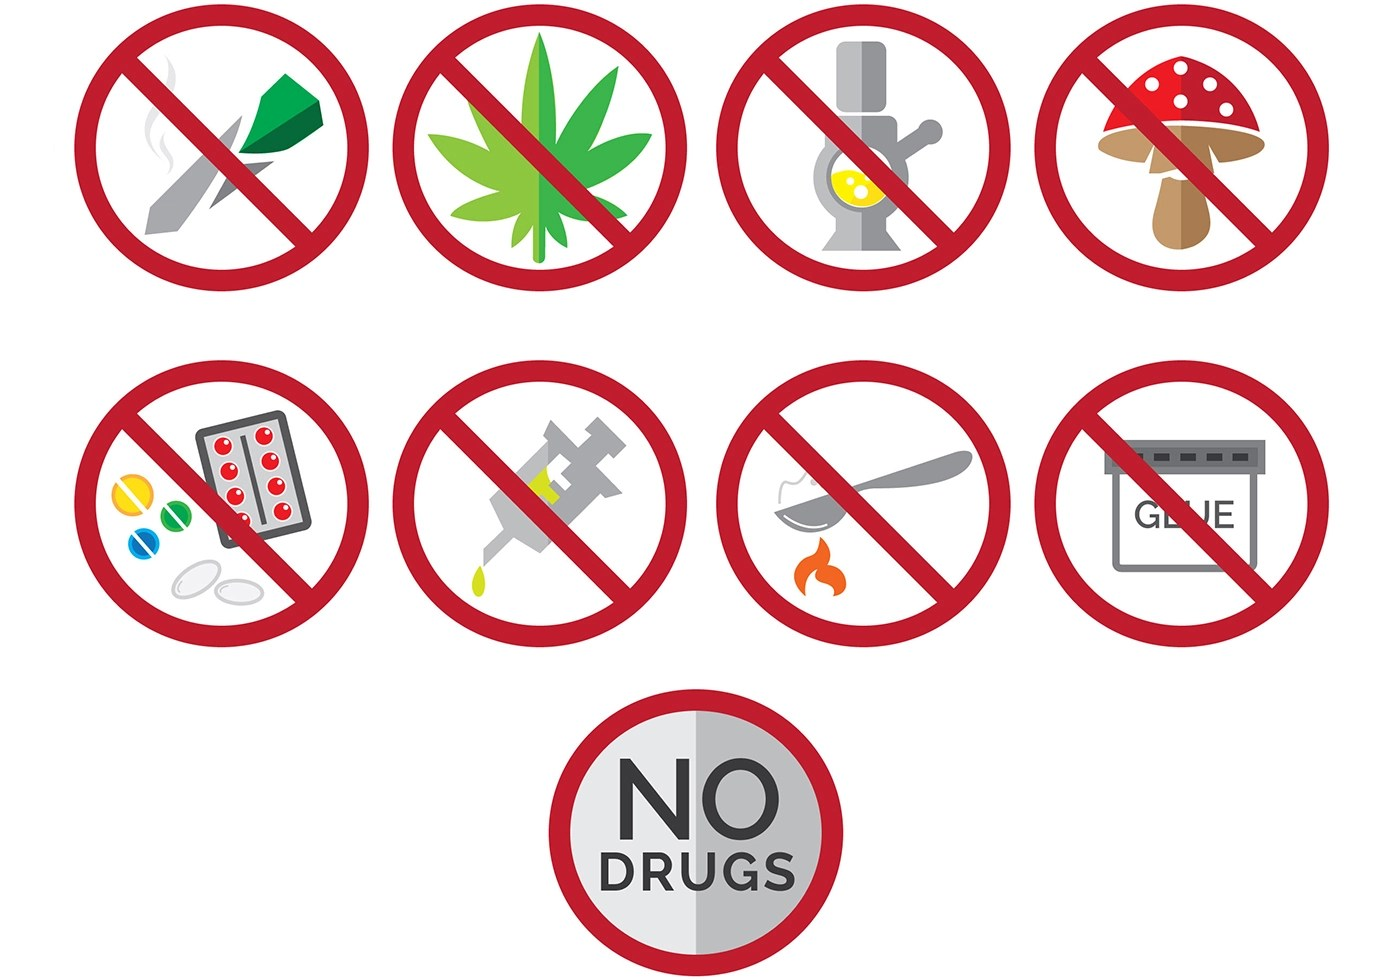 Say No To Drugs Icons